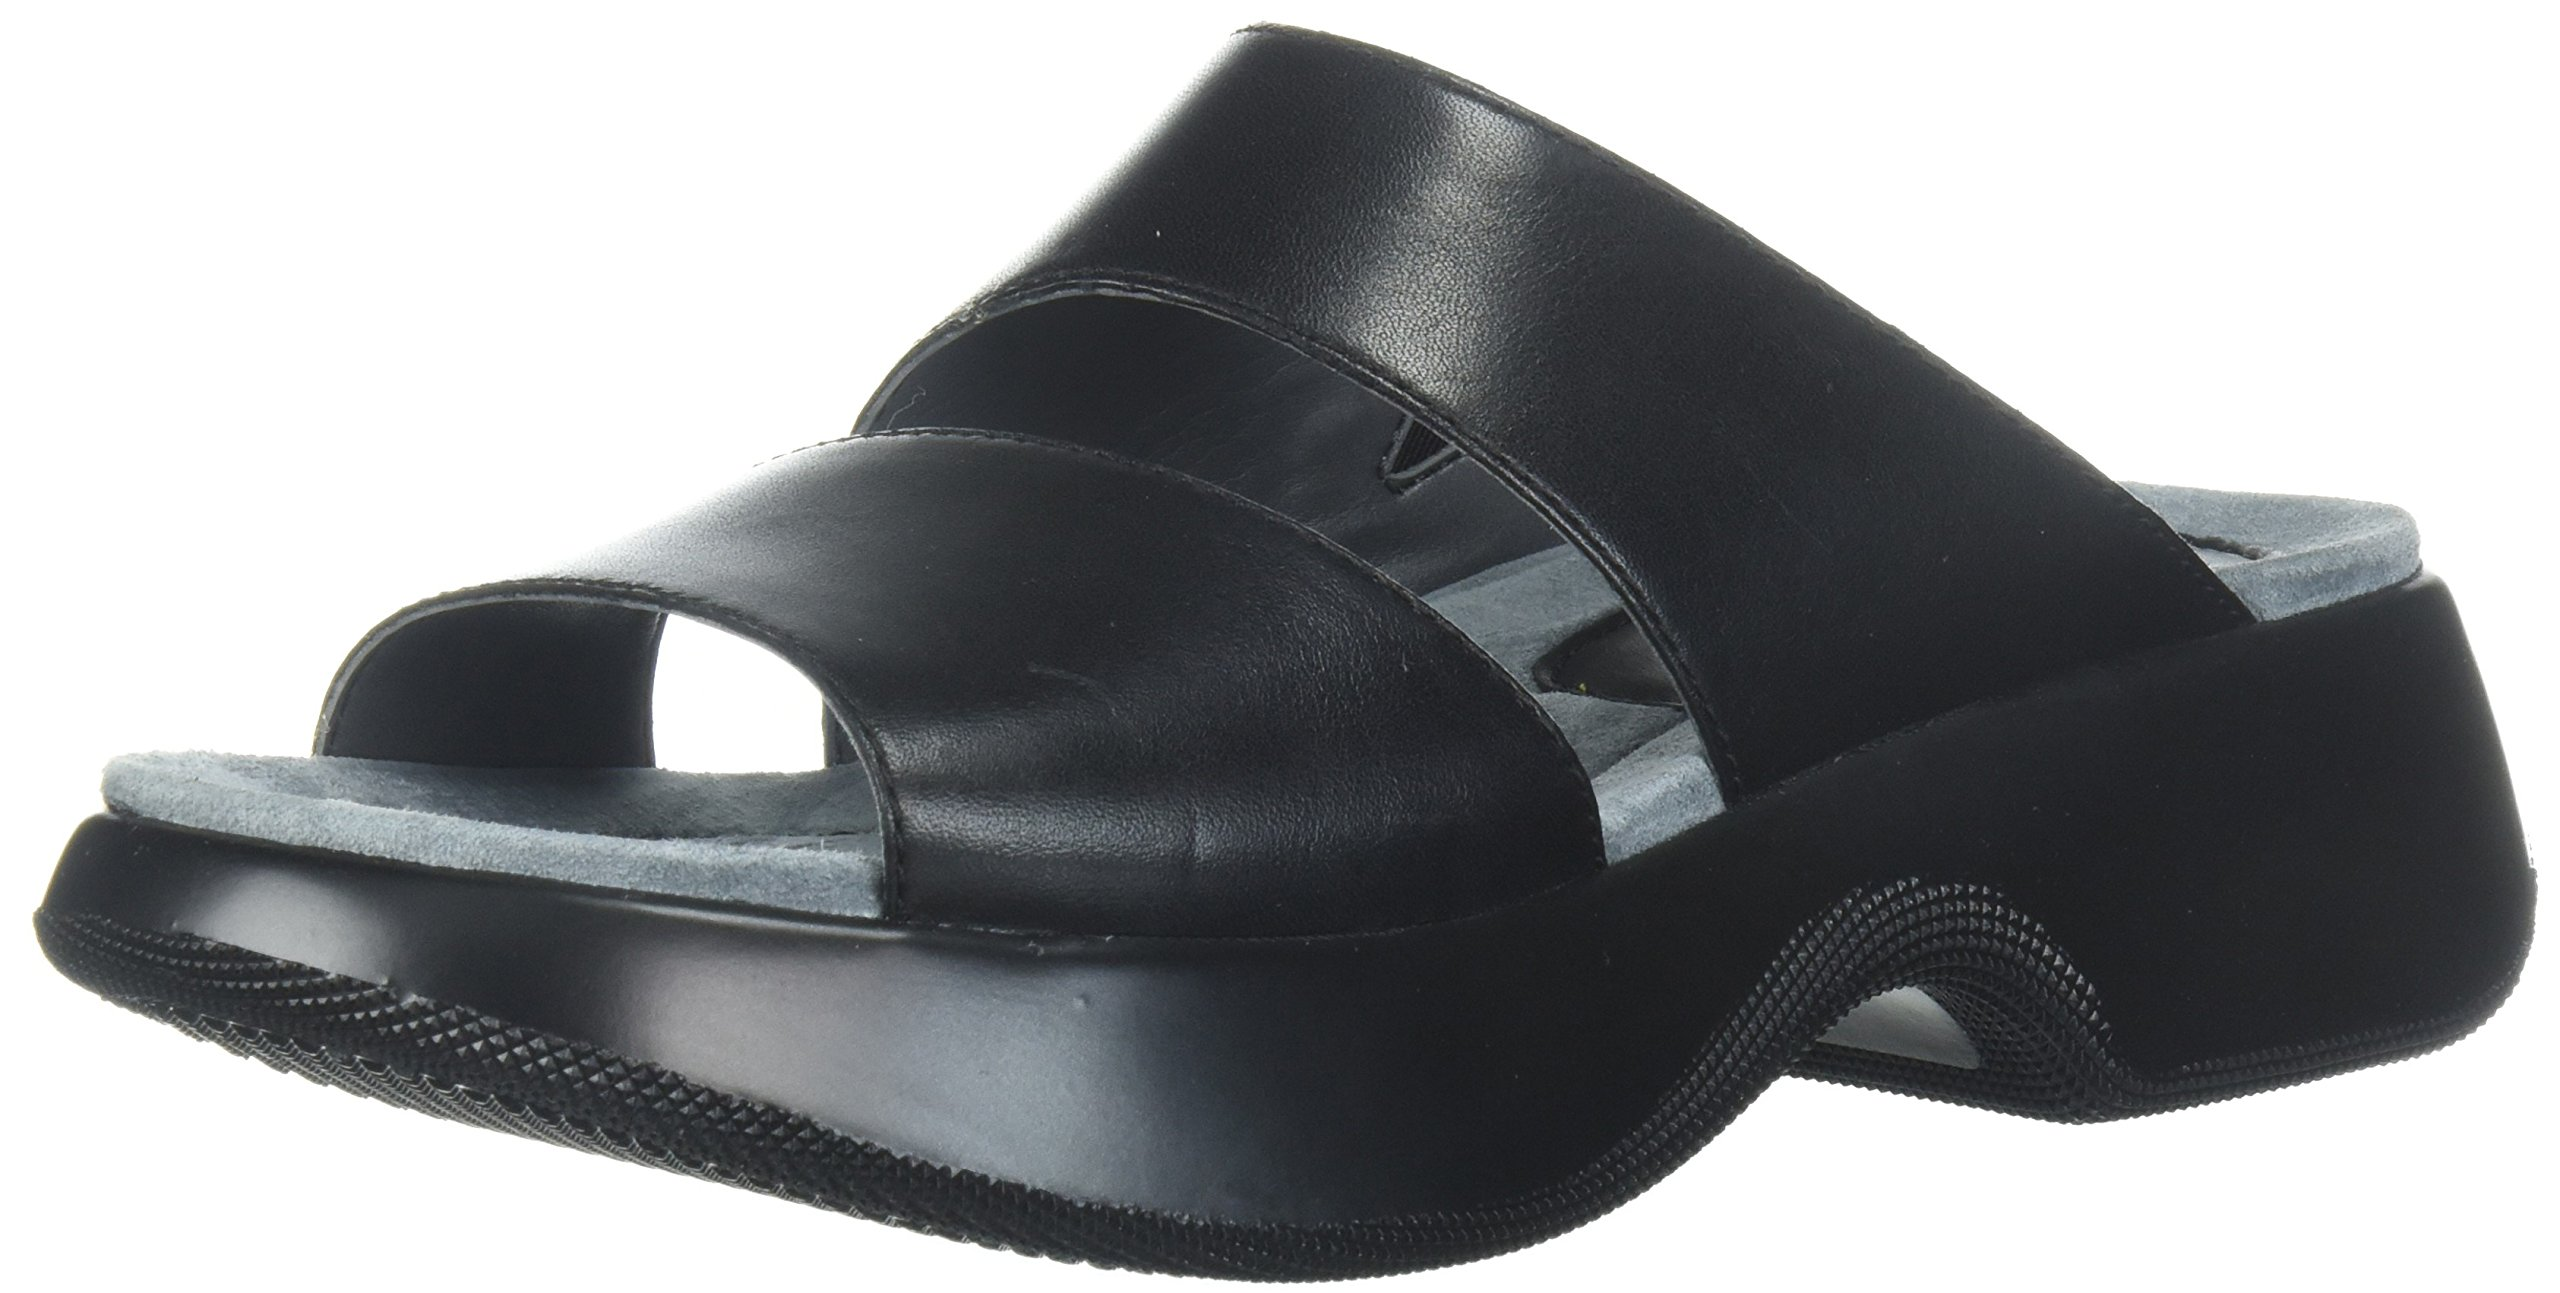 Dansko Women's Lana Slide Sandal, Black Full Grain, 42 M EU (11.5-12 US)